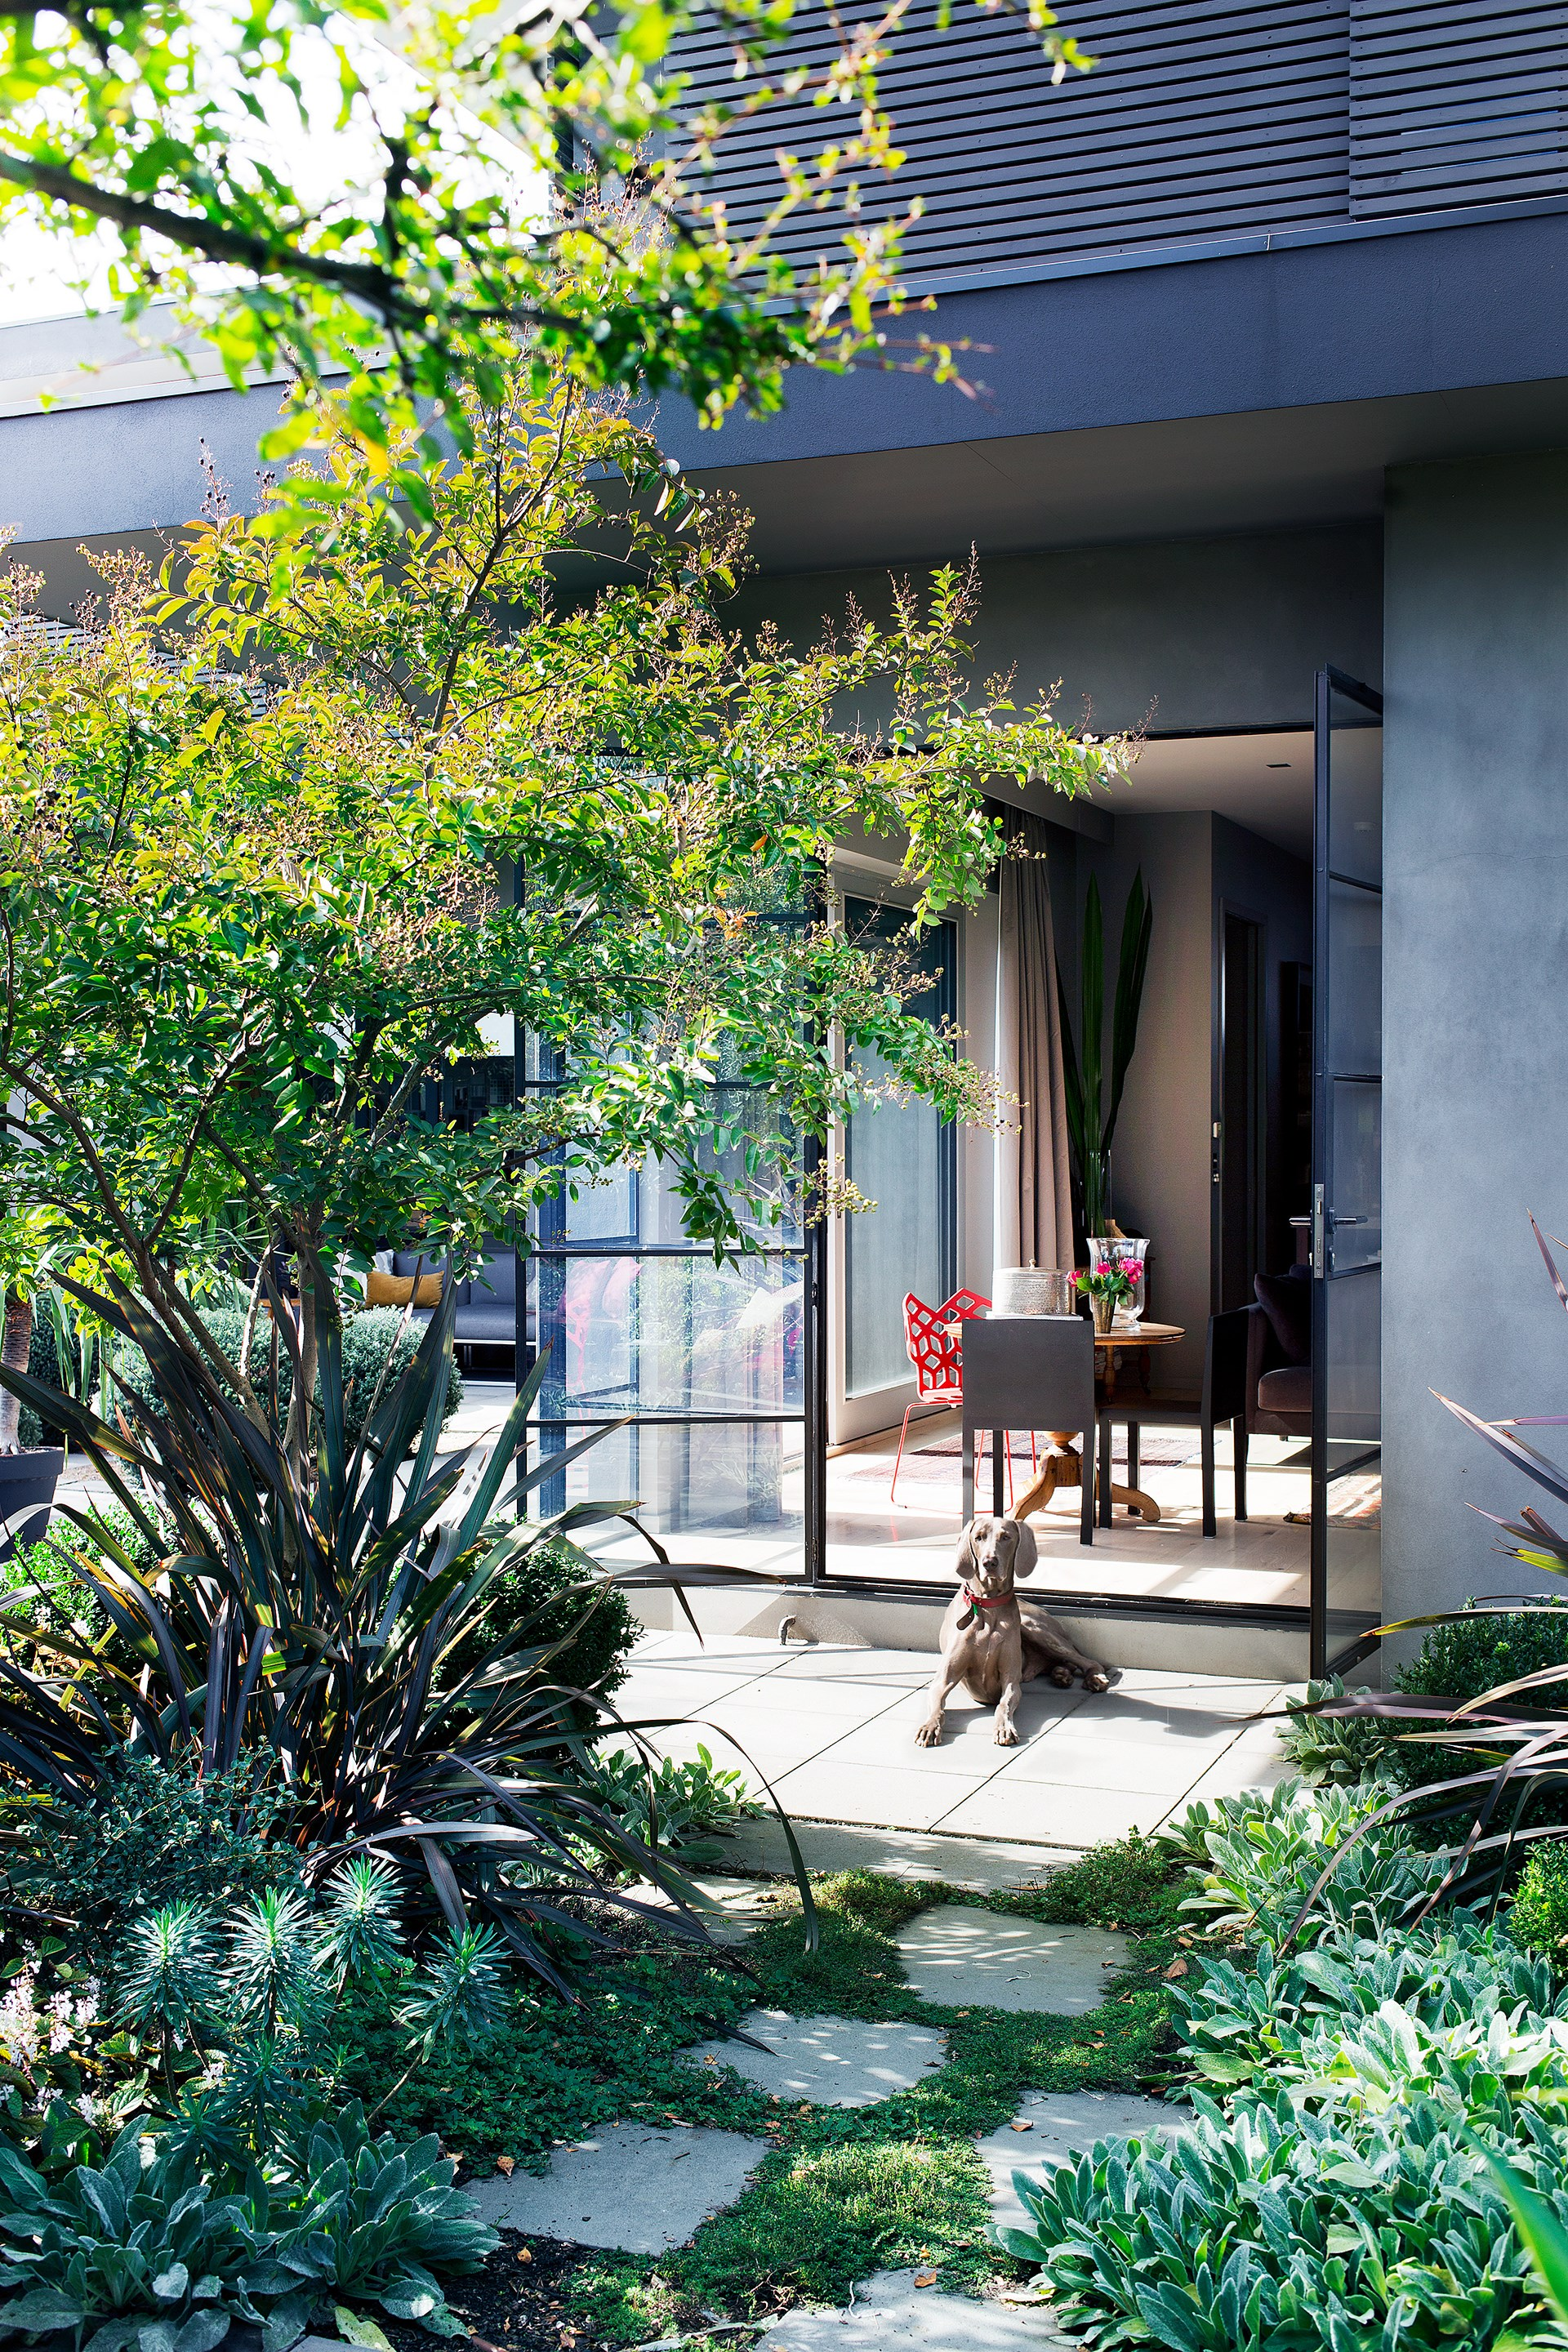 Eiffy enjoys some downtime in a patch of sunlight. Amanda used a mix of screening and accent plants to differentiate spatial zones and create both private pockets and dramatic points of intersection.